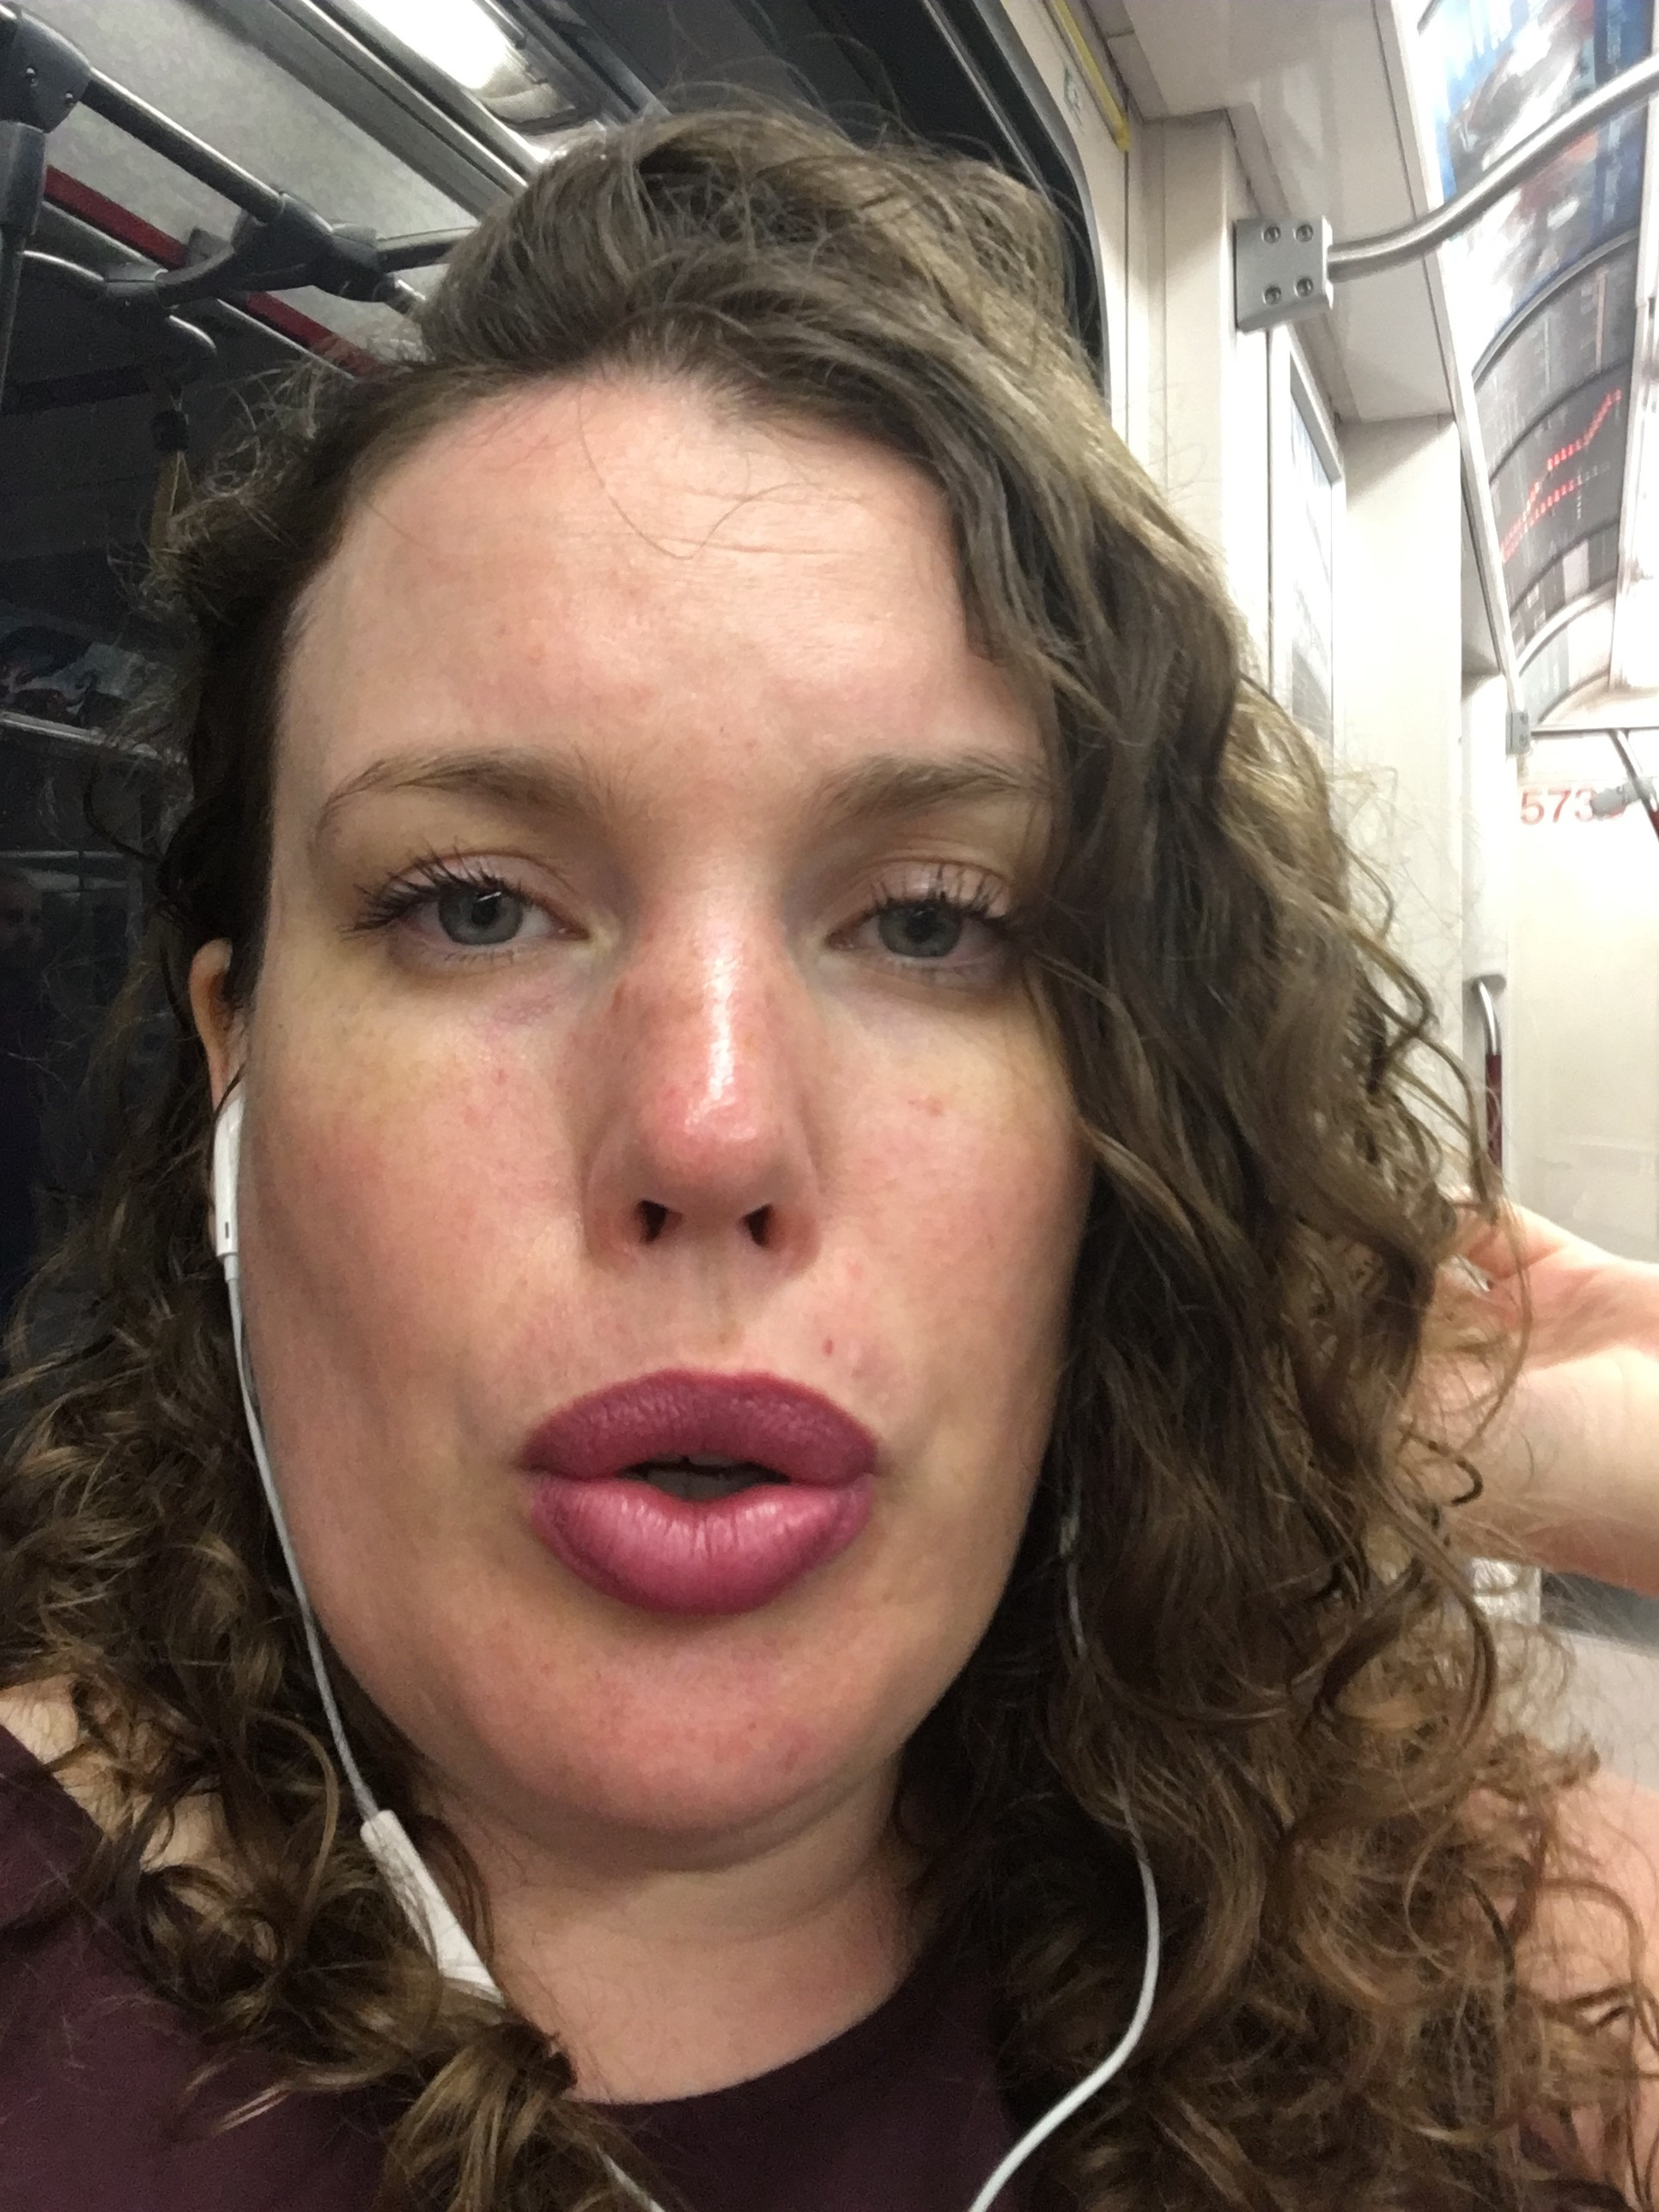 Picture description: Me on the subway, lips pressed in a breathing exercise, trying to reduce my anxiety before work.